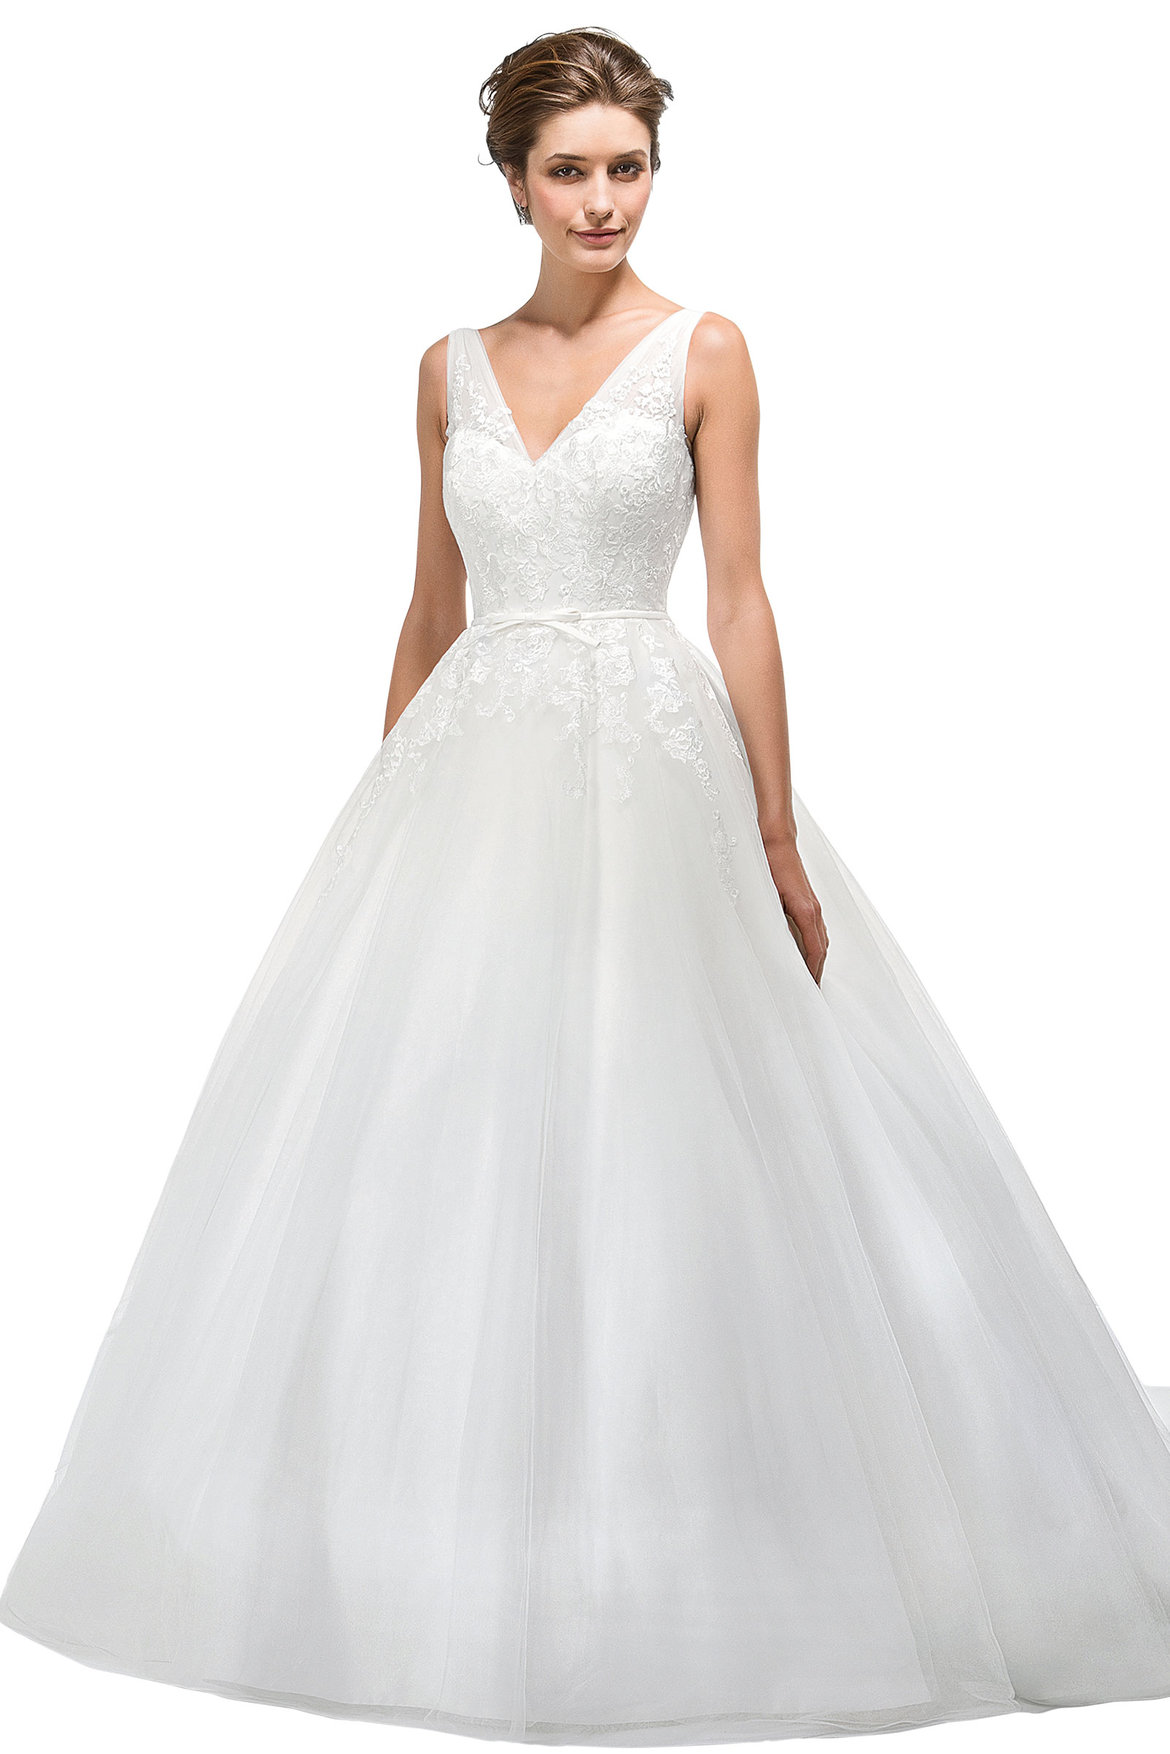 Best wedding dress for your body type page 3 bridalguide for Full body wedding dress